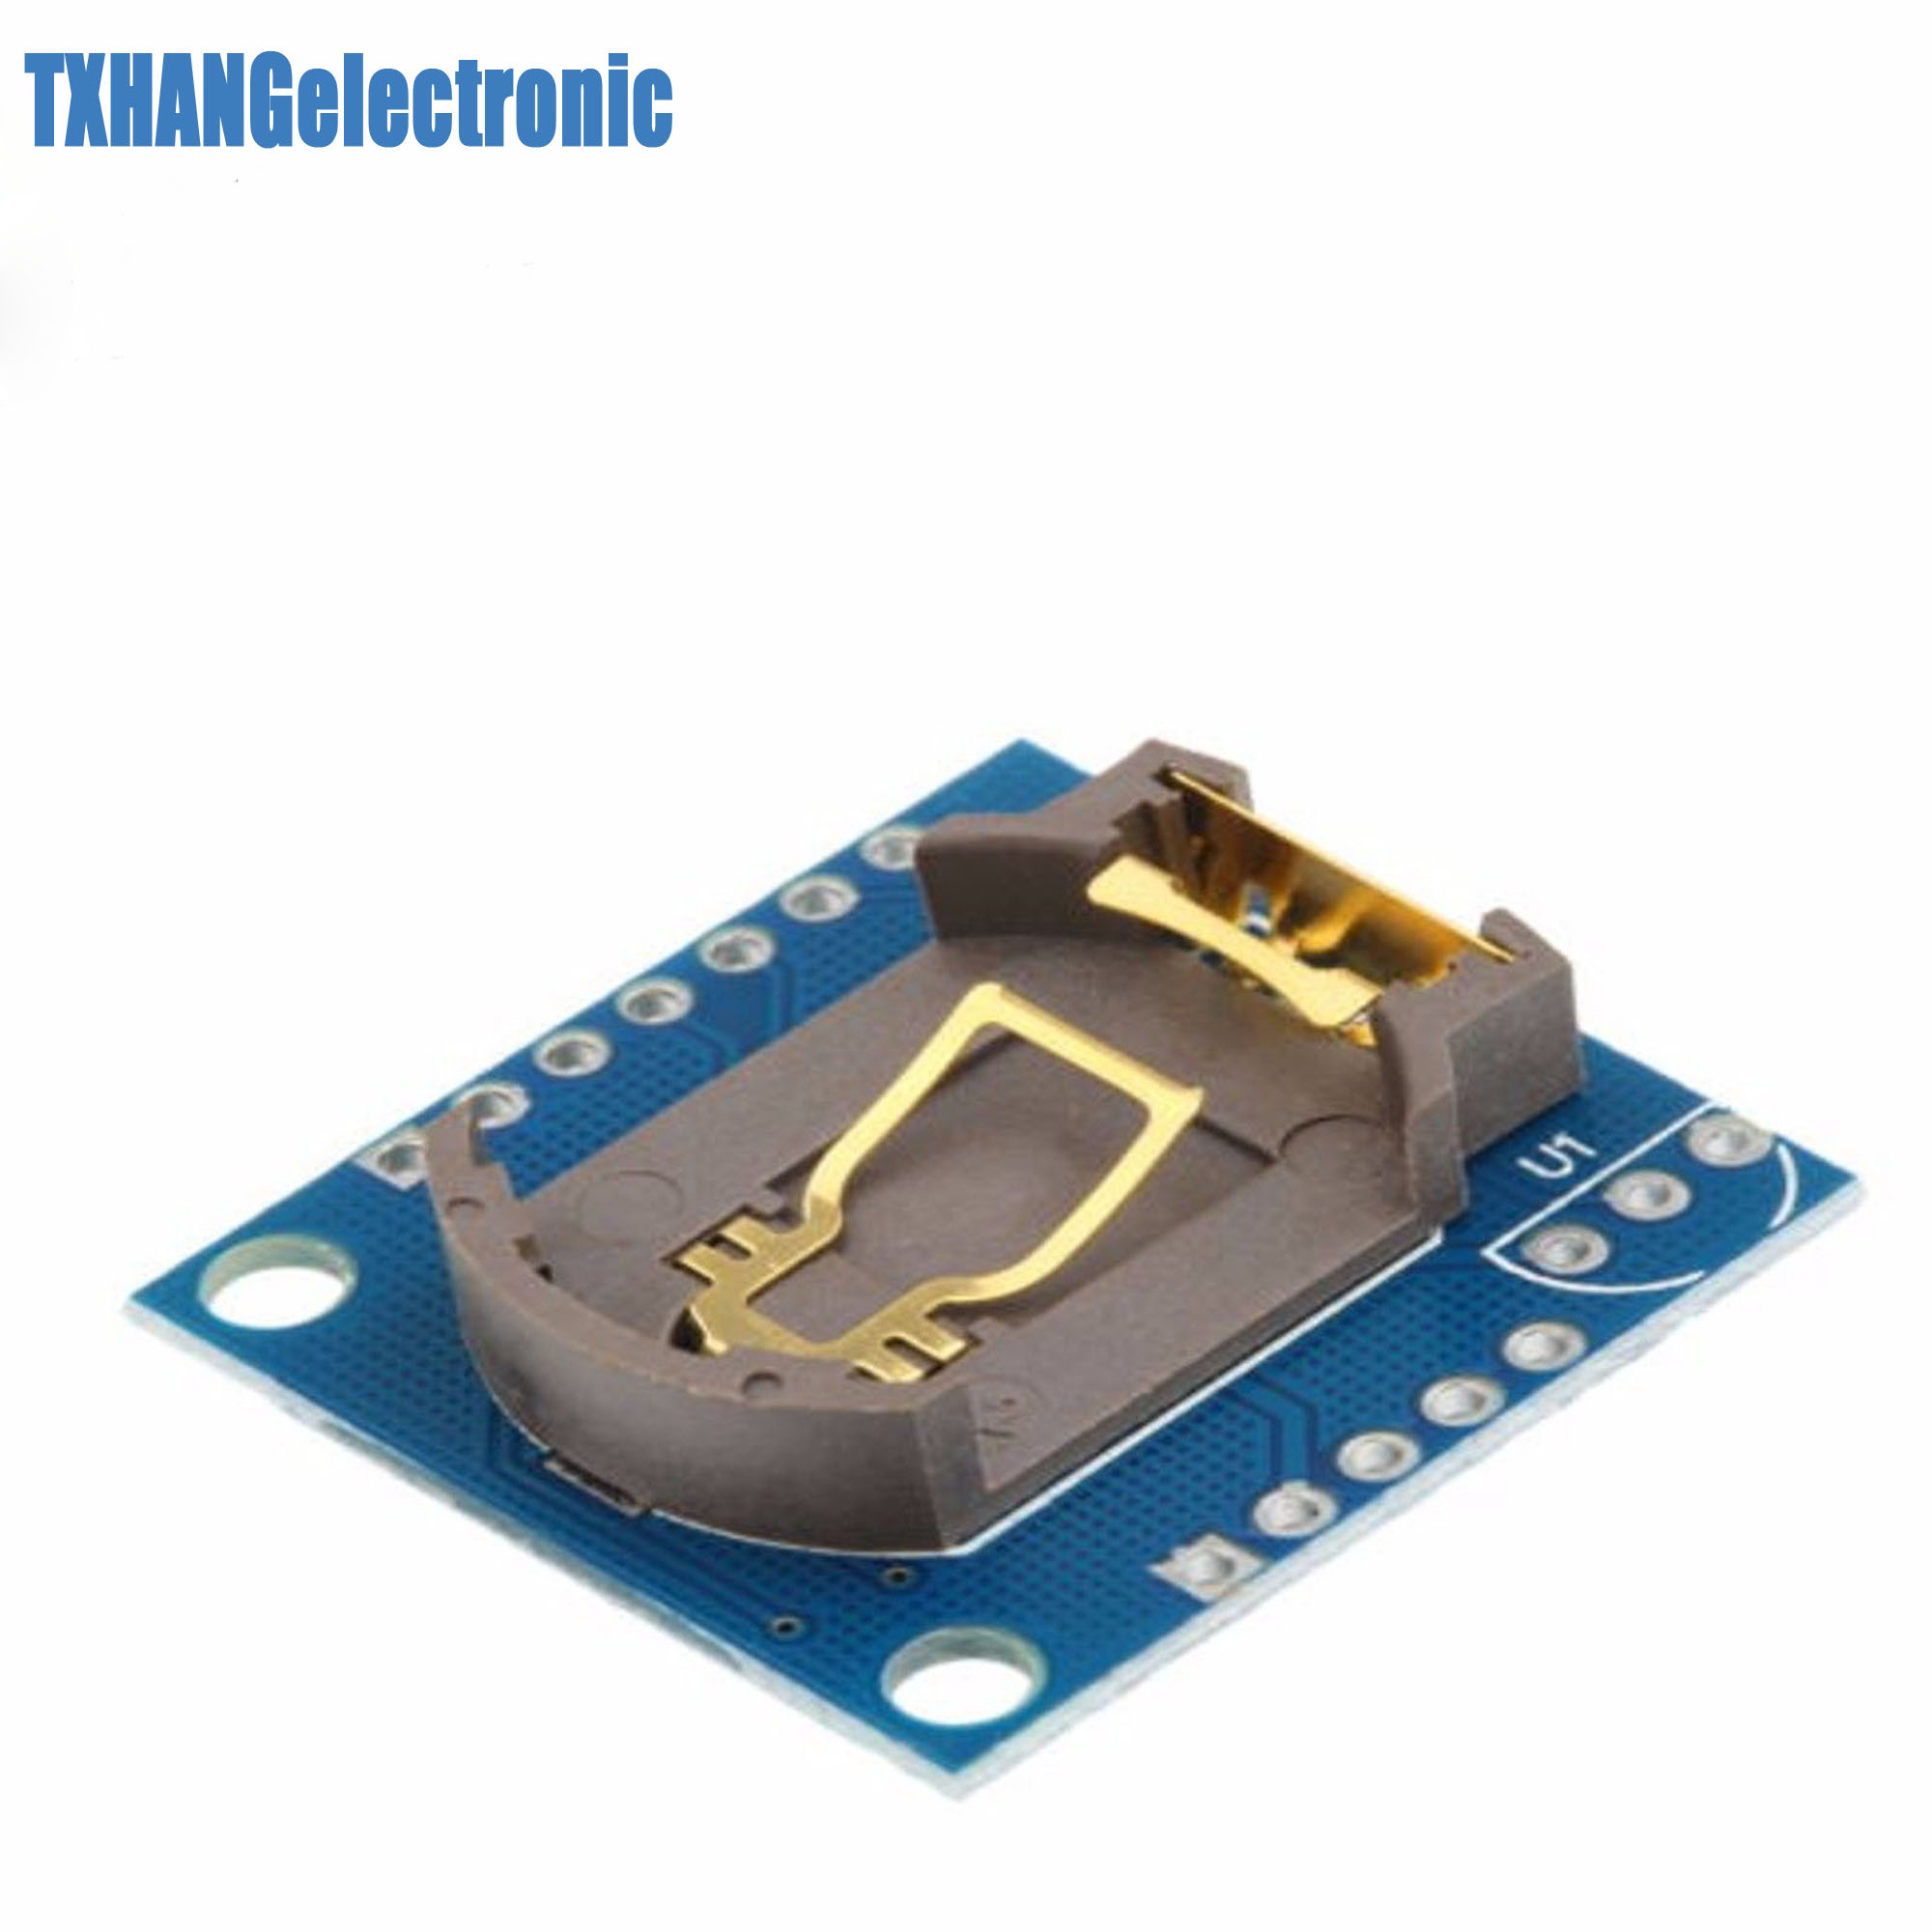 5 stücke I2C RTC DS1307 AT24C32 <font><b>Real</b></font> Time <font><b>Clock</b></font> Modul Für ARM AVR PIC SMD image